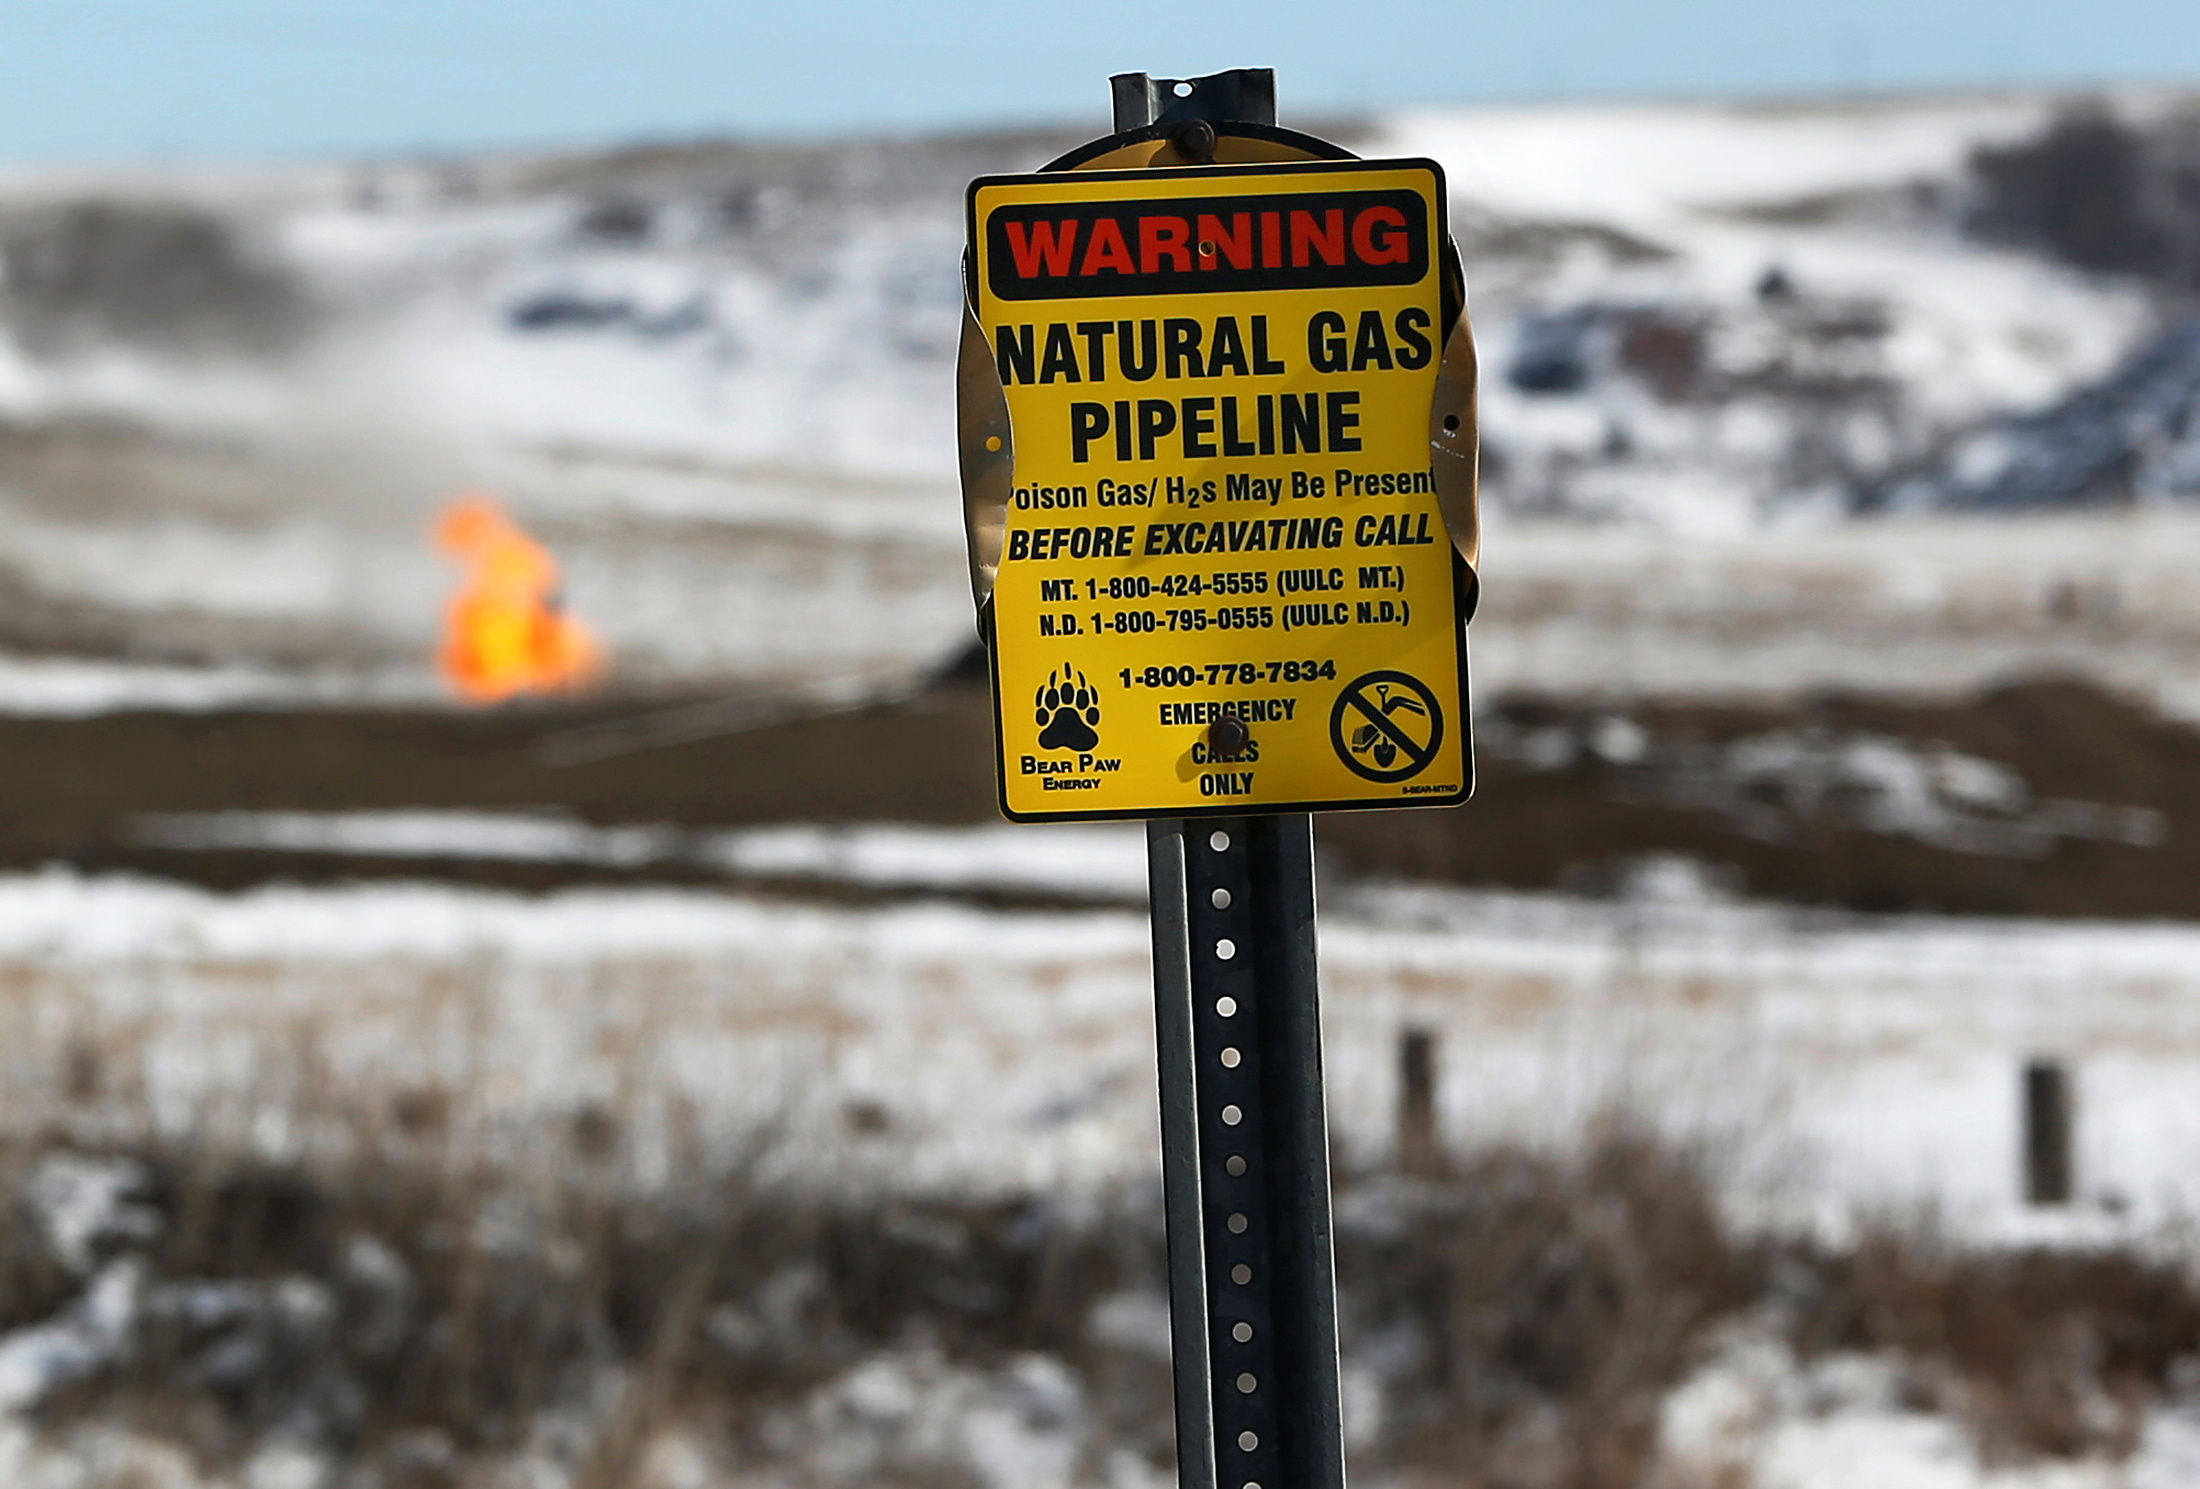 A warning sign for a natural gas pipeline is seen in front of natural gas flares at an oil pump site outside of Williston, North Dakota March 11, 2013.  REUTERS/Shannon Stapleton/